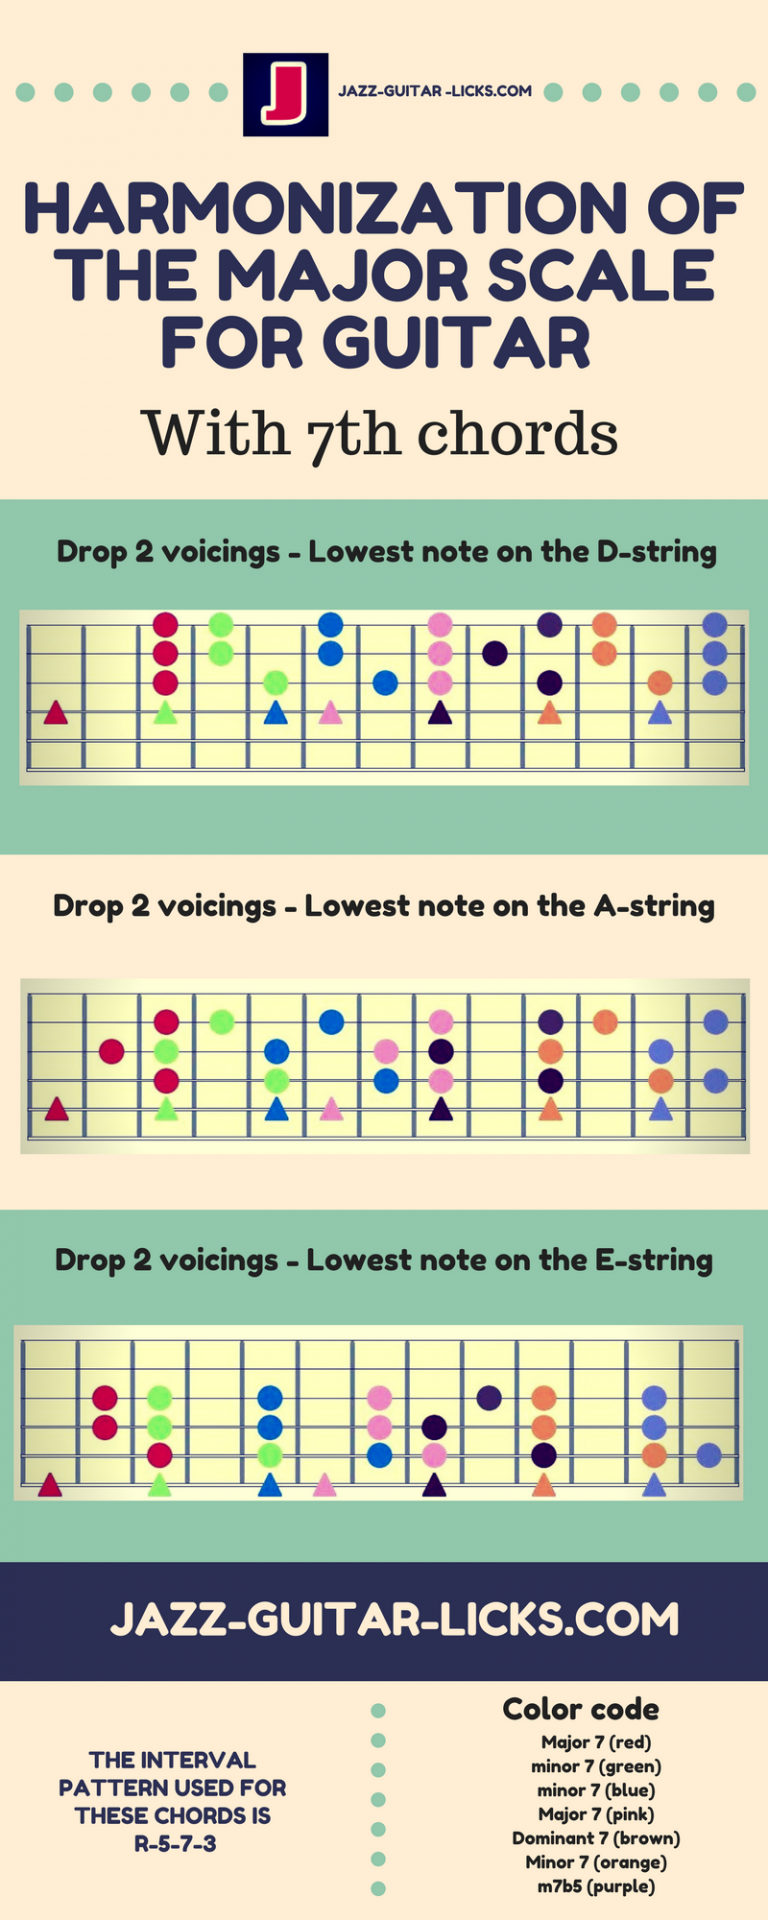 How To Harmonize The Major Scale With 7th Chords